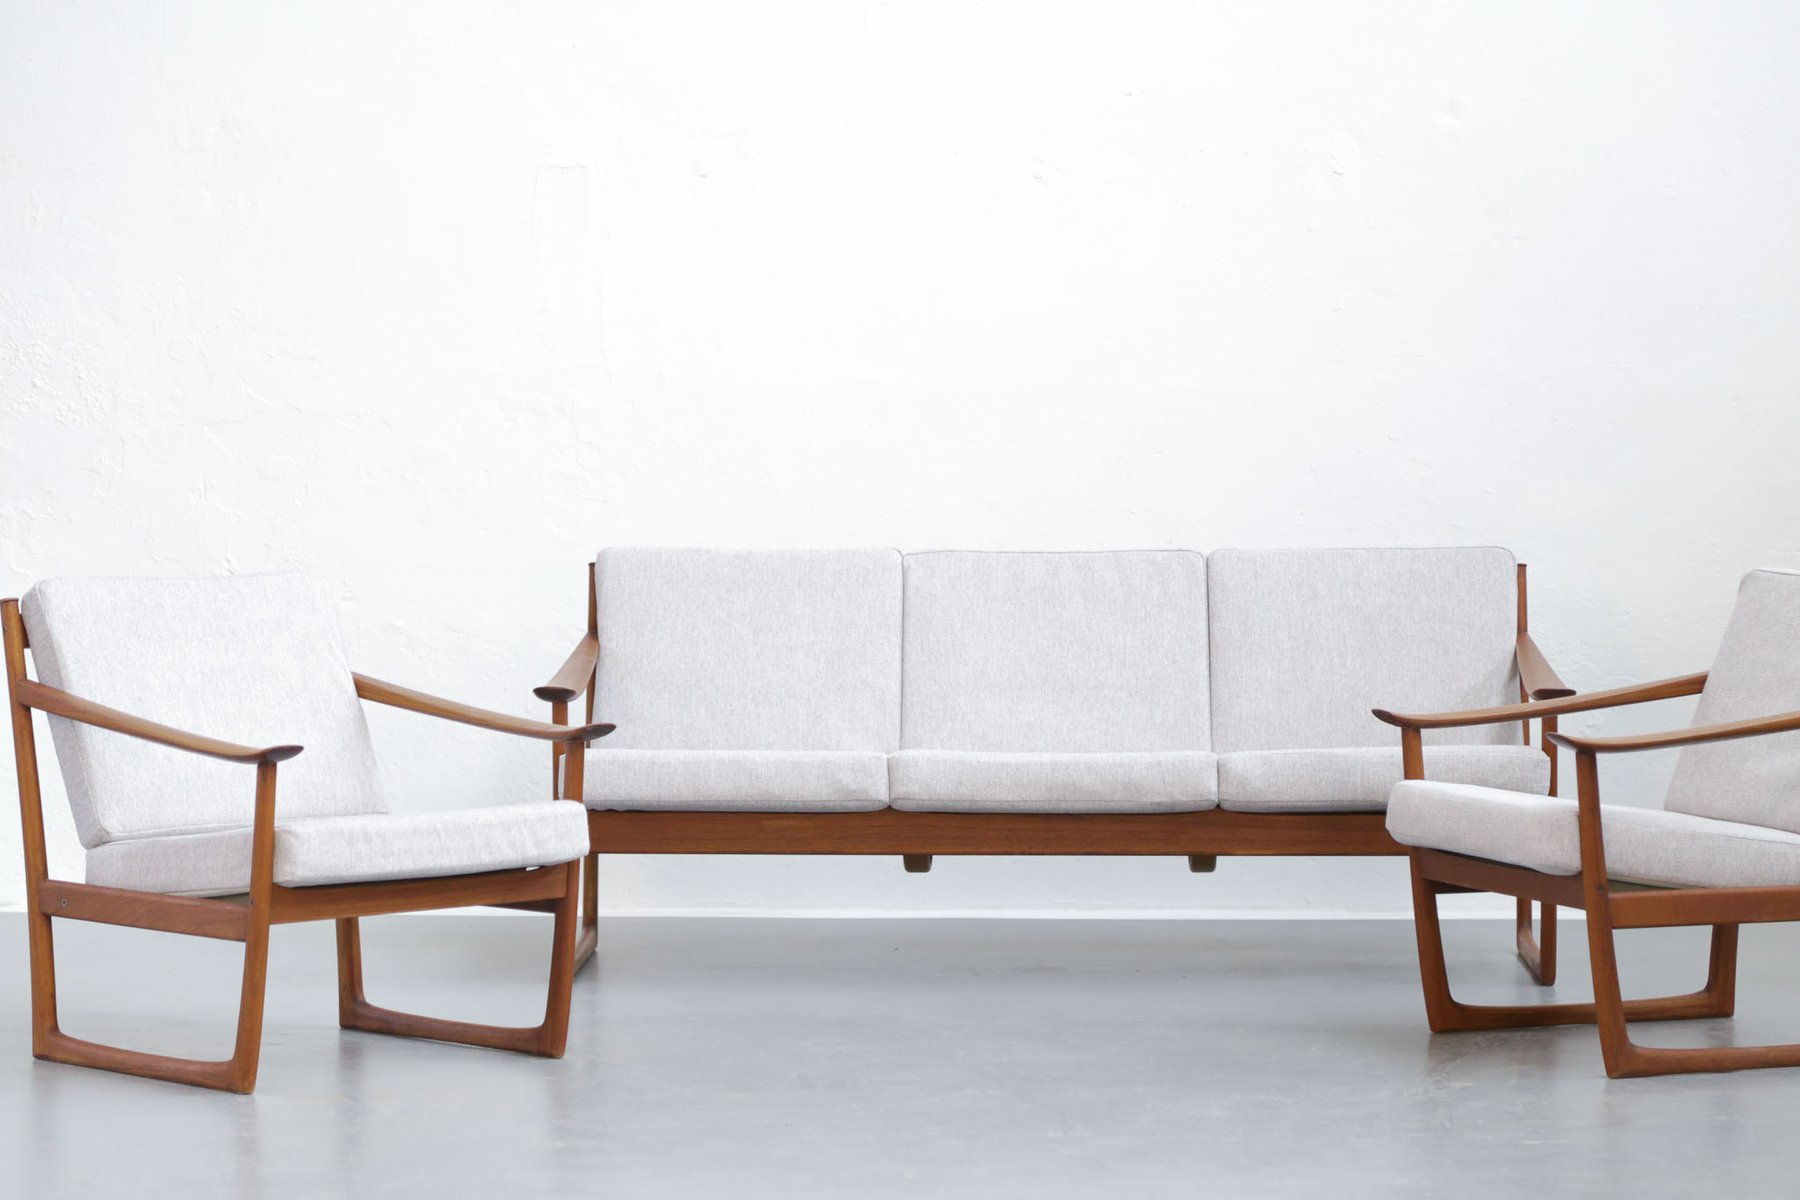 danish fd130 sofa and 2 chairs by peter hvidt orla. Black Bedroom Furniture Sets. Home Design Ideas